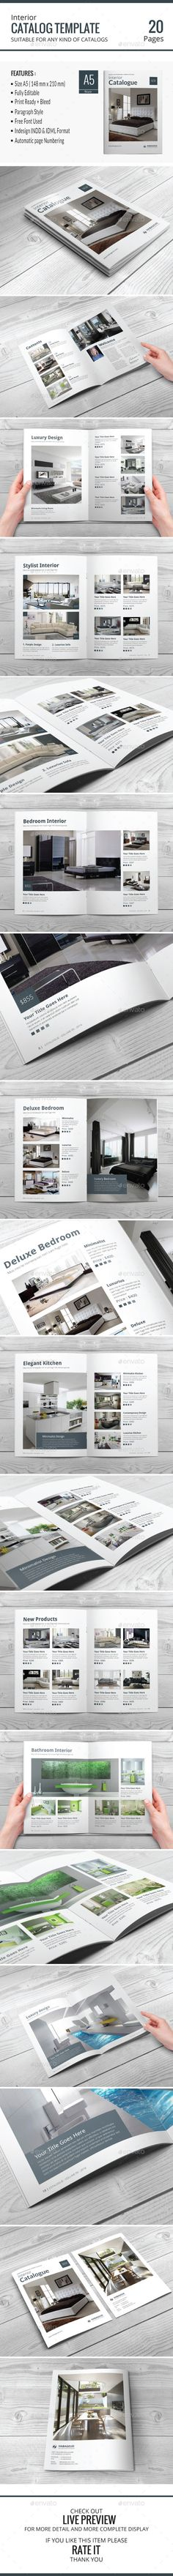 Catalog Template Vol. 05 http://graphicriver.net/item/catalog-template-vol-05/9004624?WT.ac=portfolio&WT.z_author=habageud